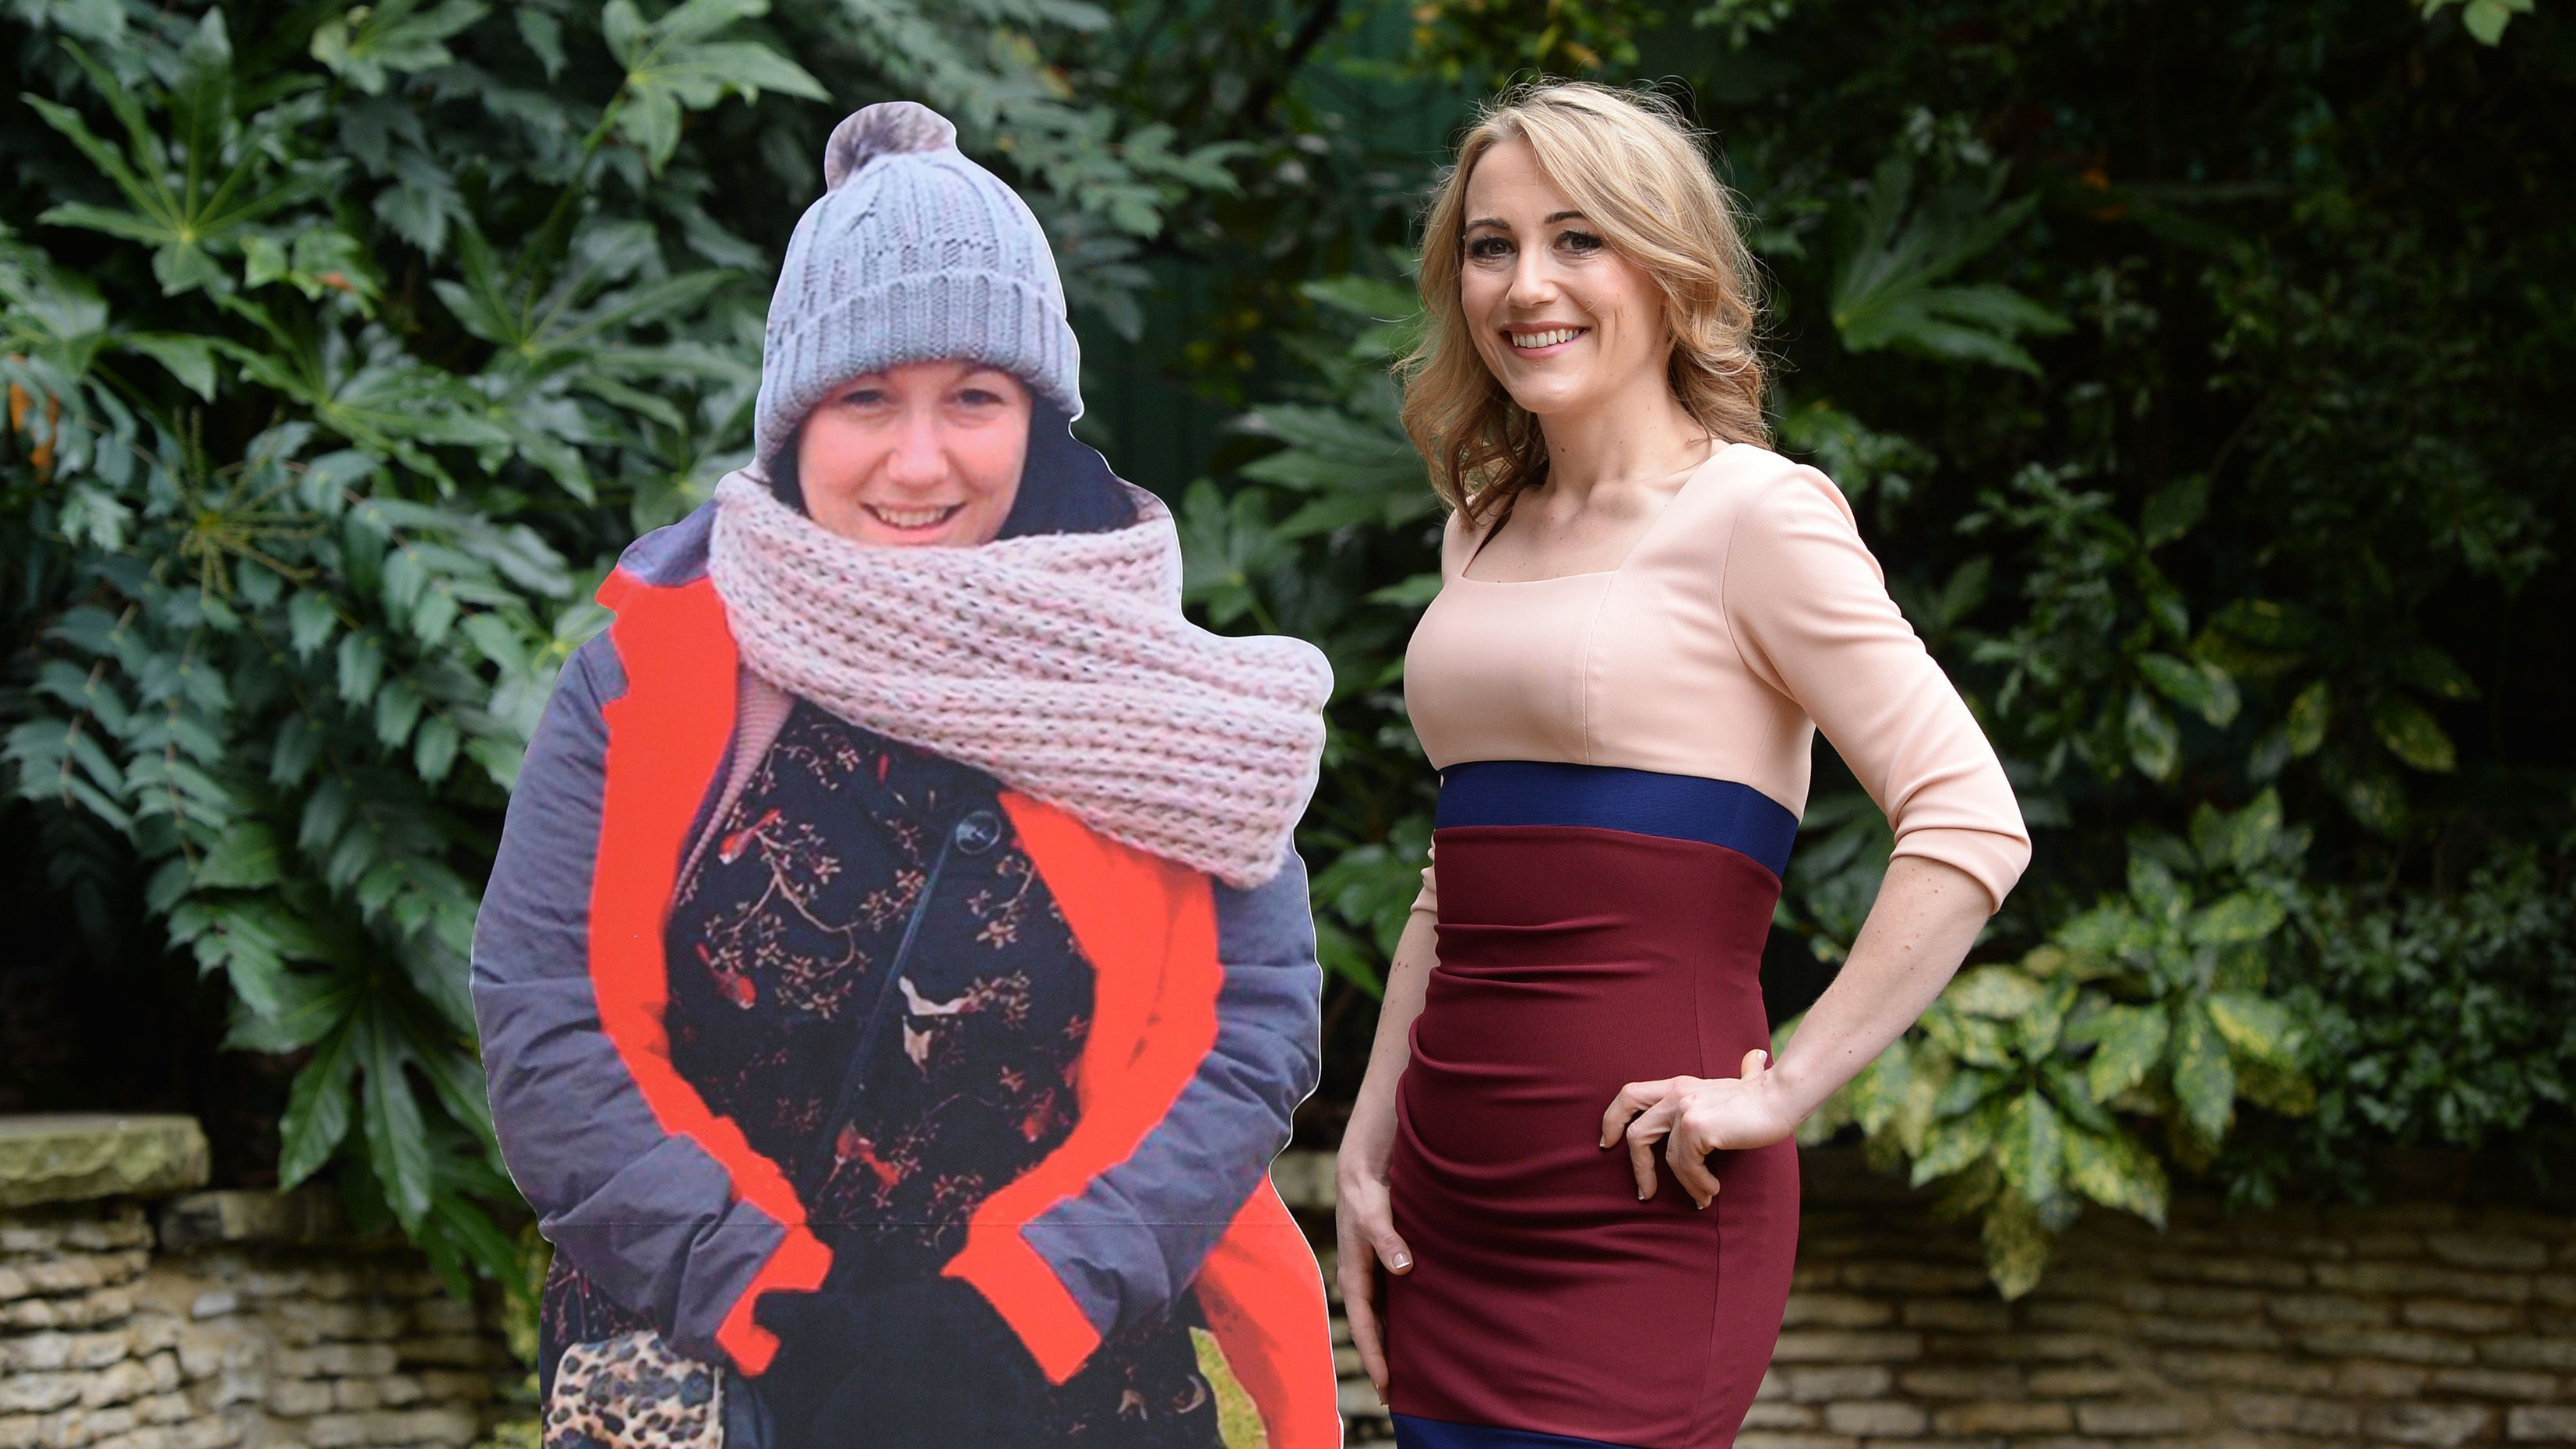 Hollie Barrett named Slimming World's Woman of the Year after dropping six dress sizes.